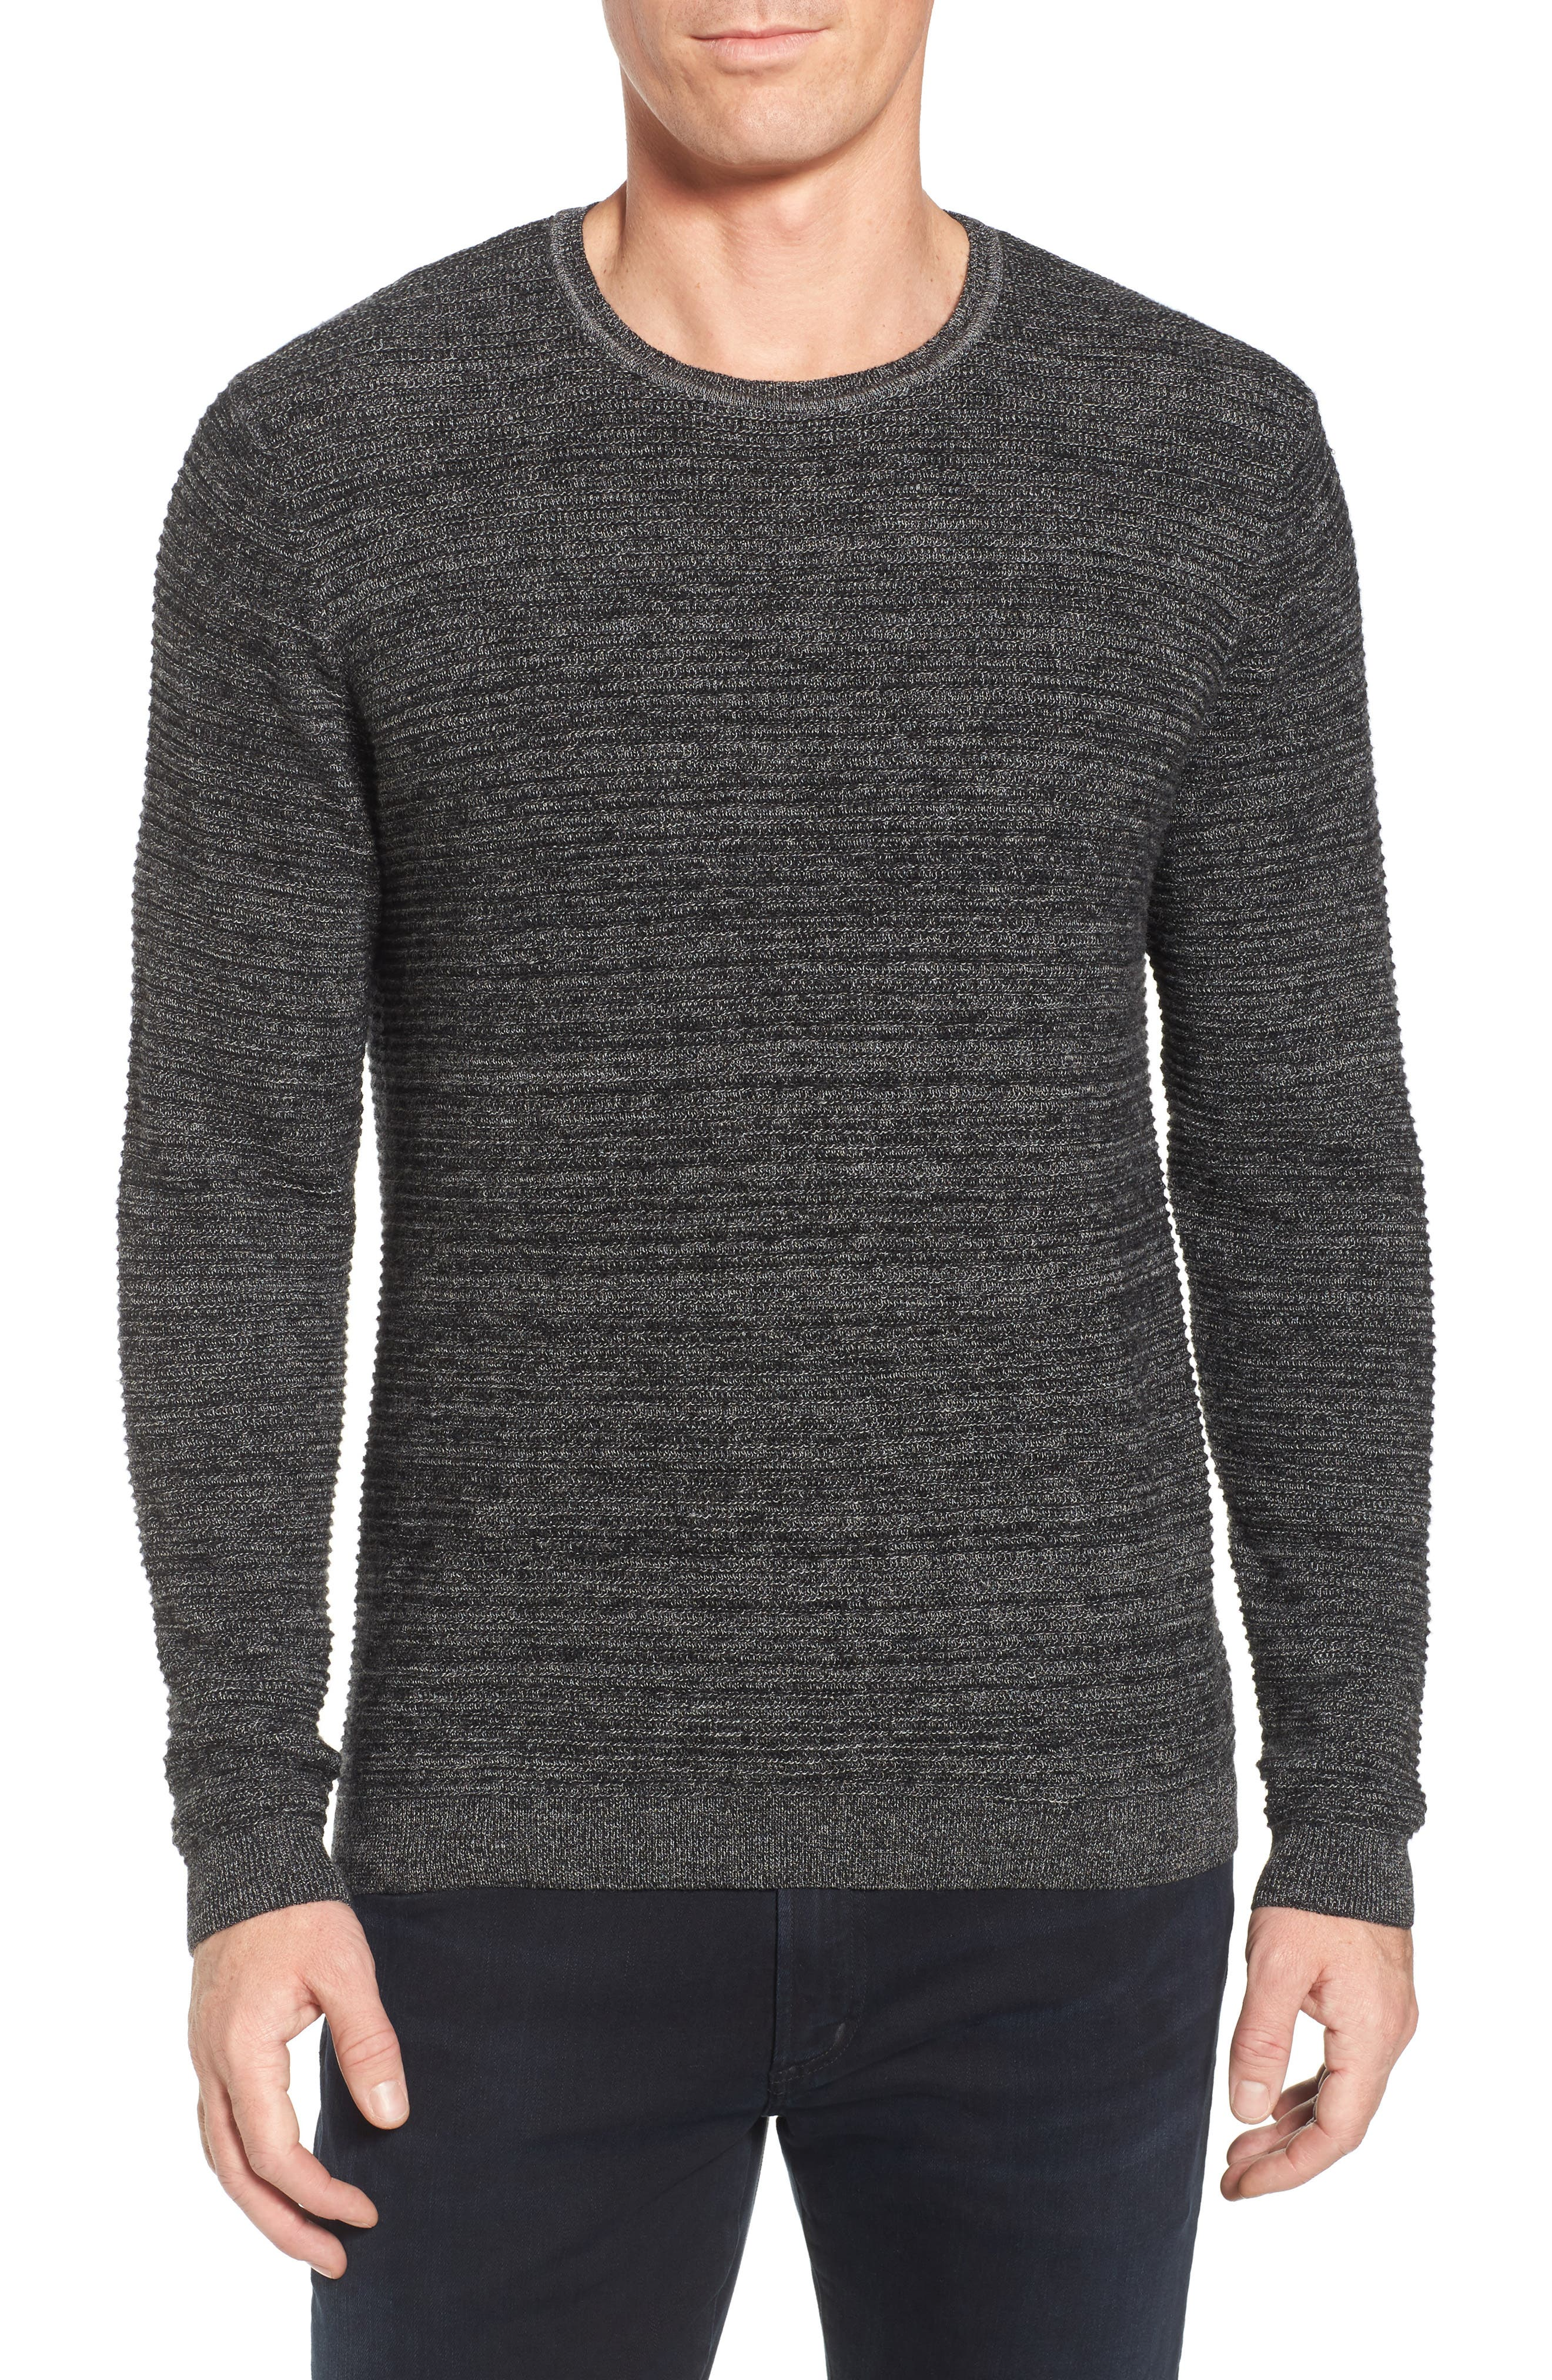 Ottoman Wool Blend Sweater,                             Main thumbnail 1, color,